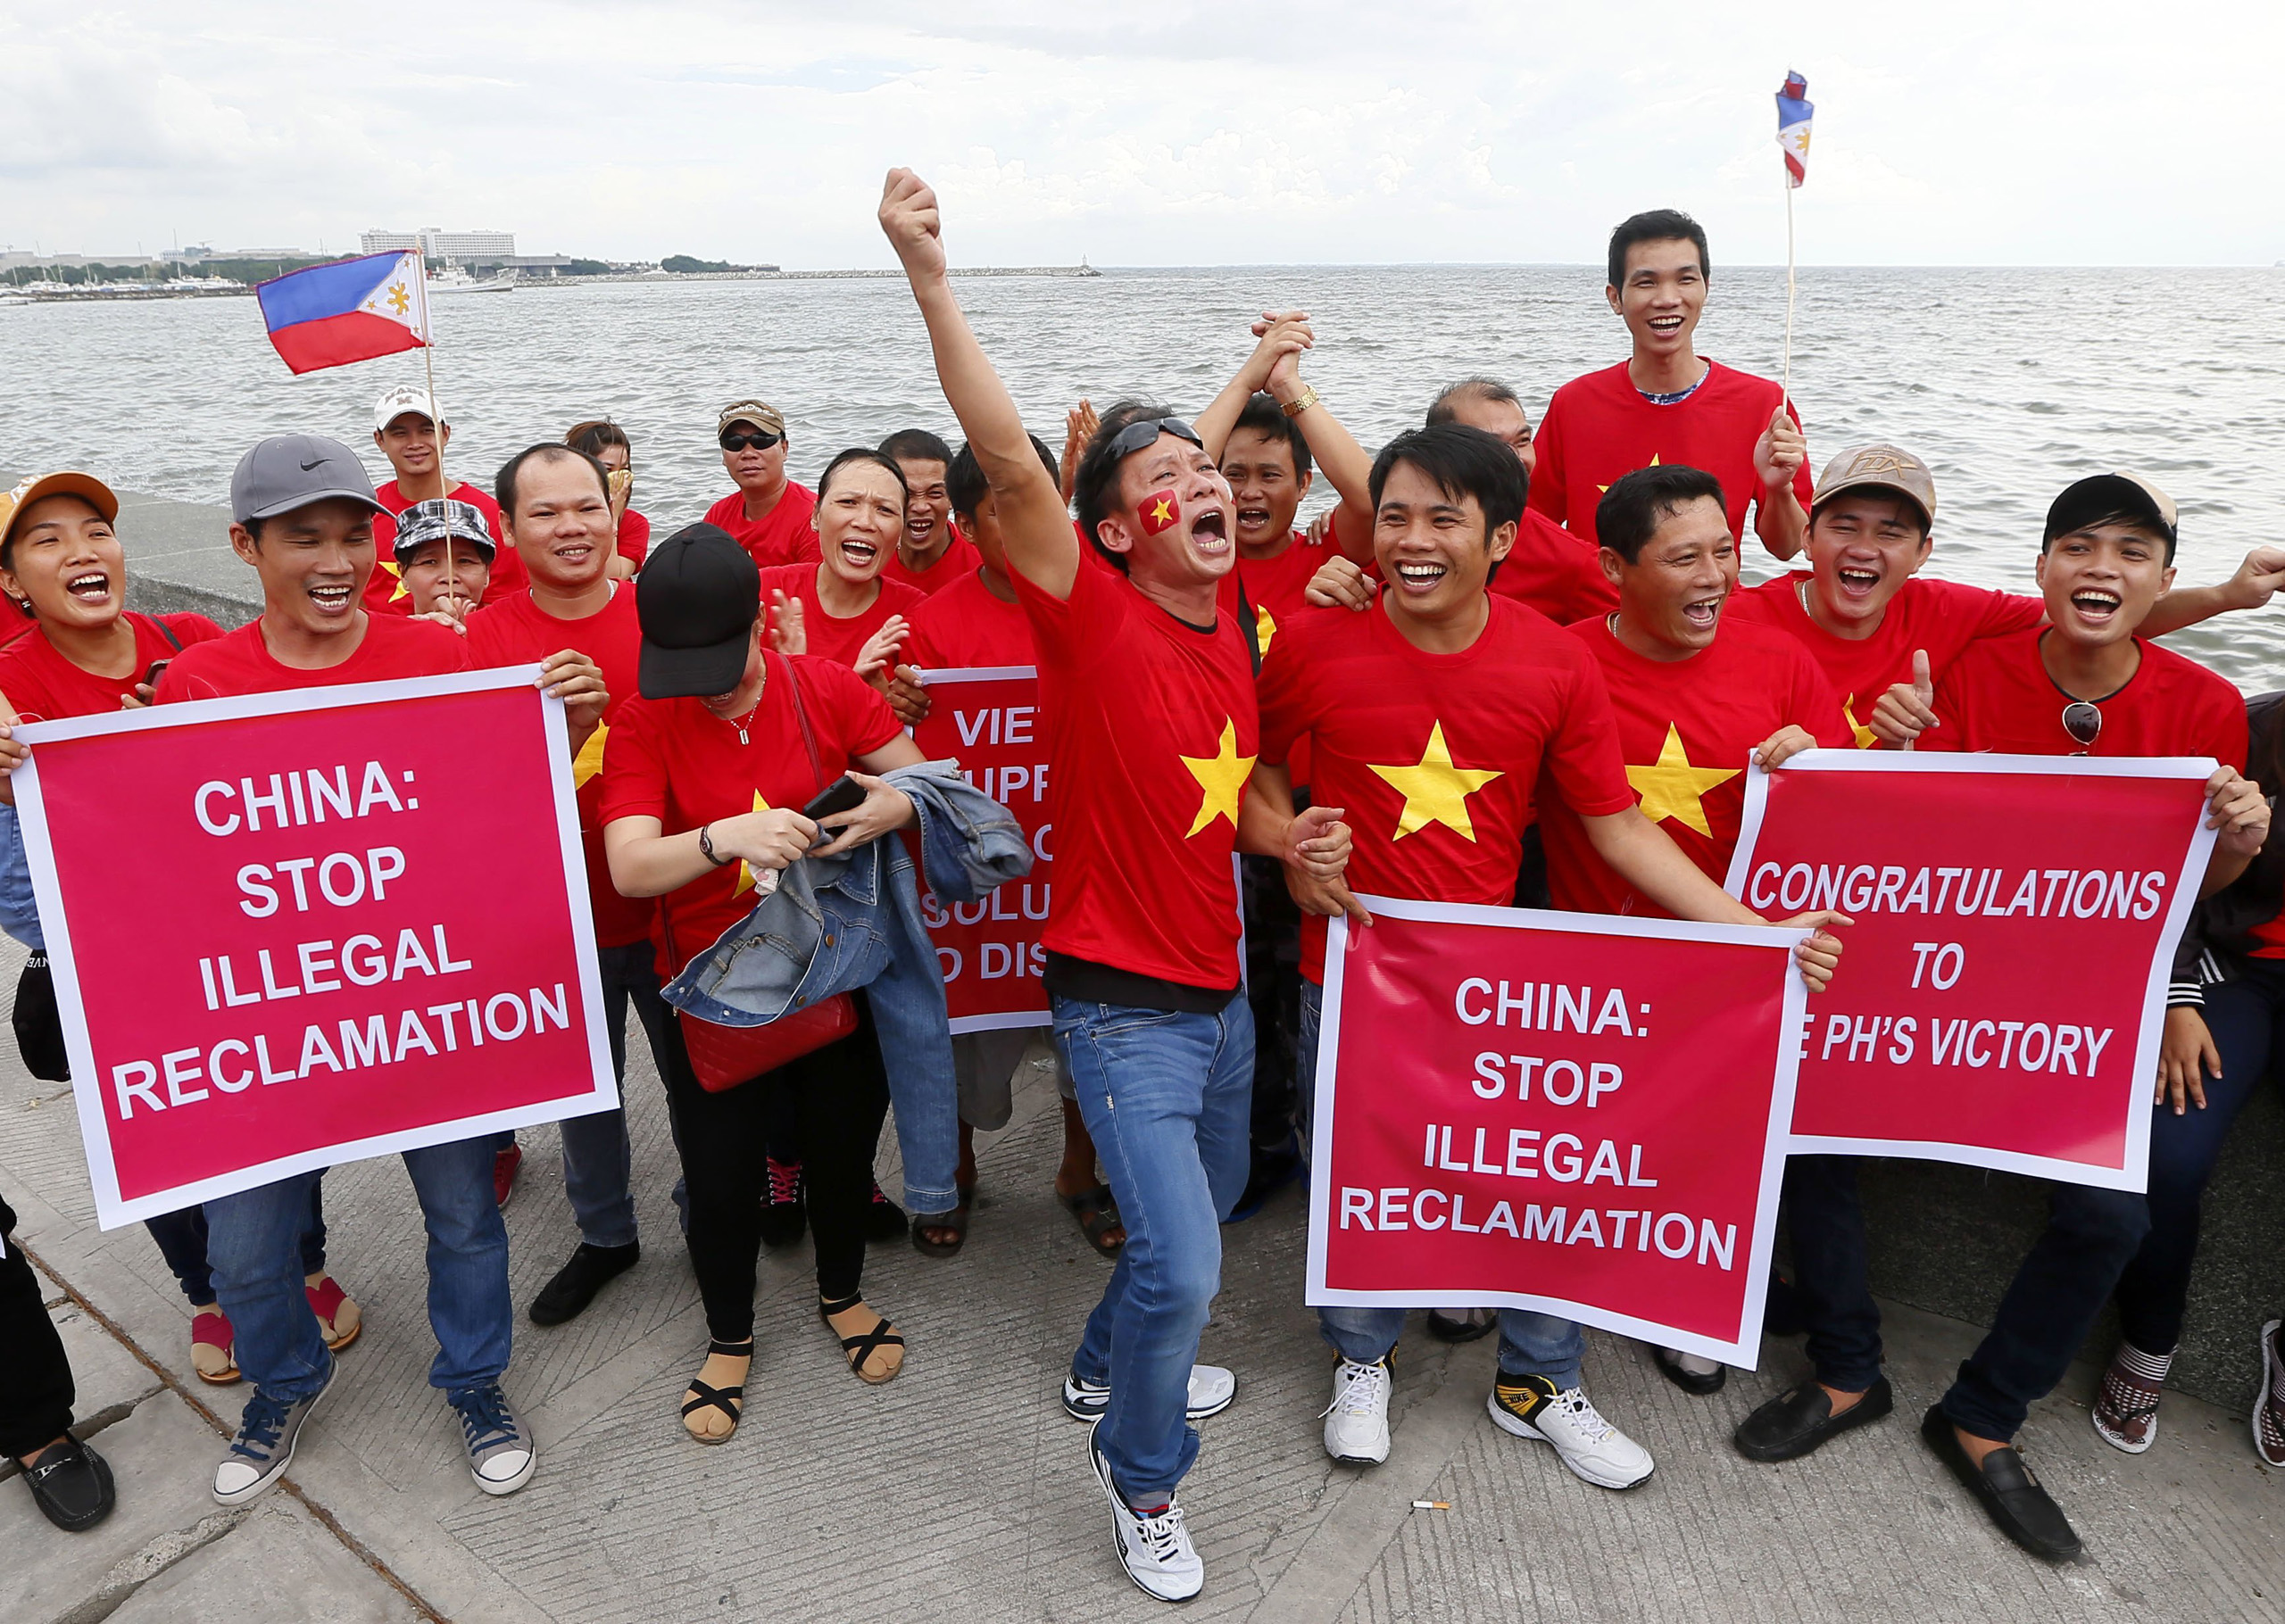 Vietnamese expatriates cheer while displaying placards during a rally by the Manila's baywalk before the Hague-based U.N. international arbitration tribunal is to announce its ruling on South China Sea in the Philippines on July 12, 2016.